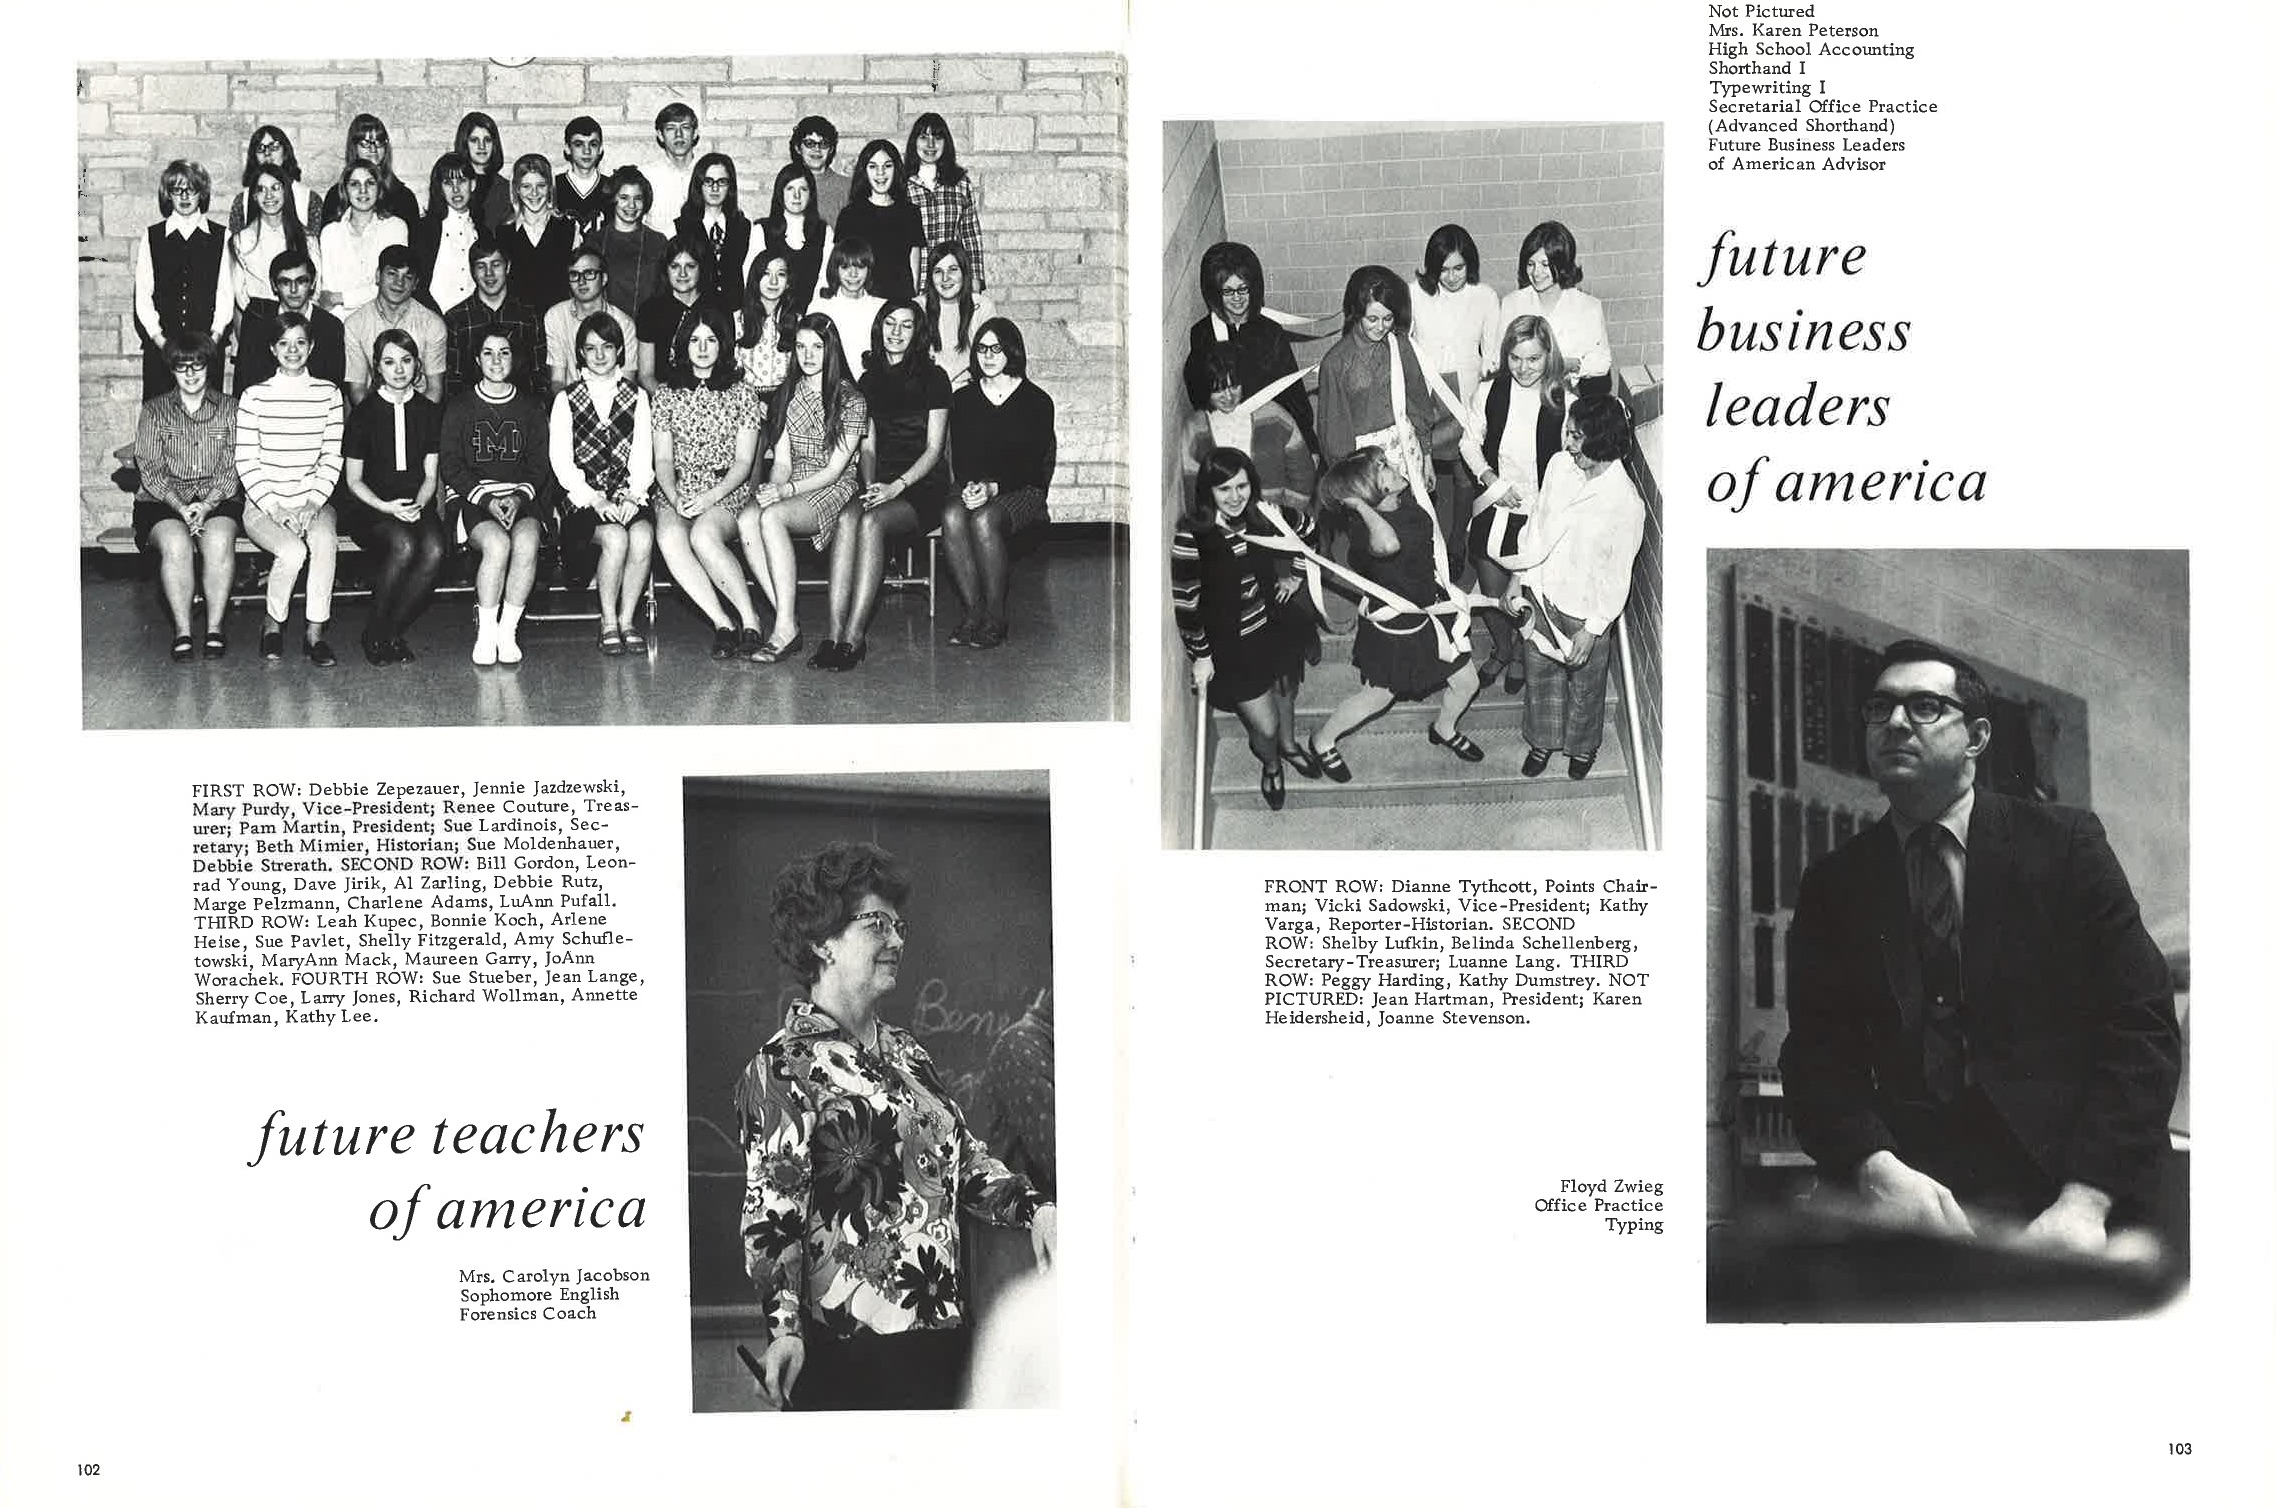 1970_Yearbook_102-103.jpg